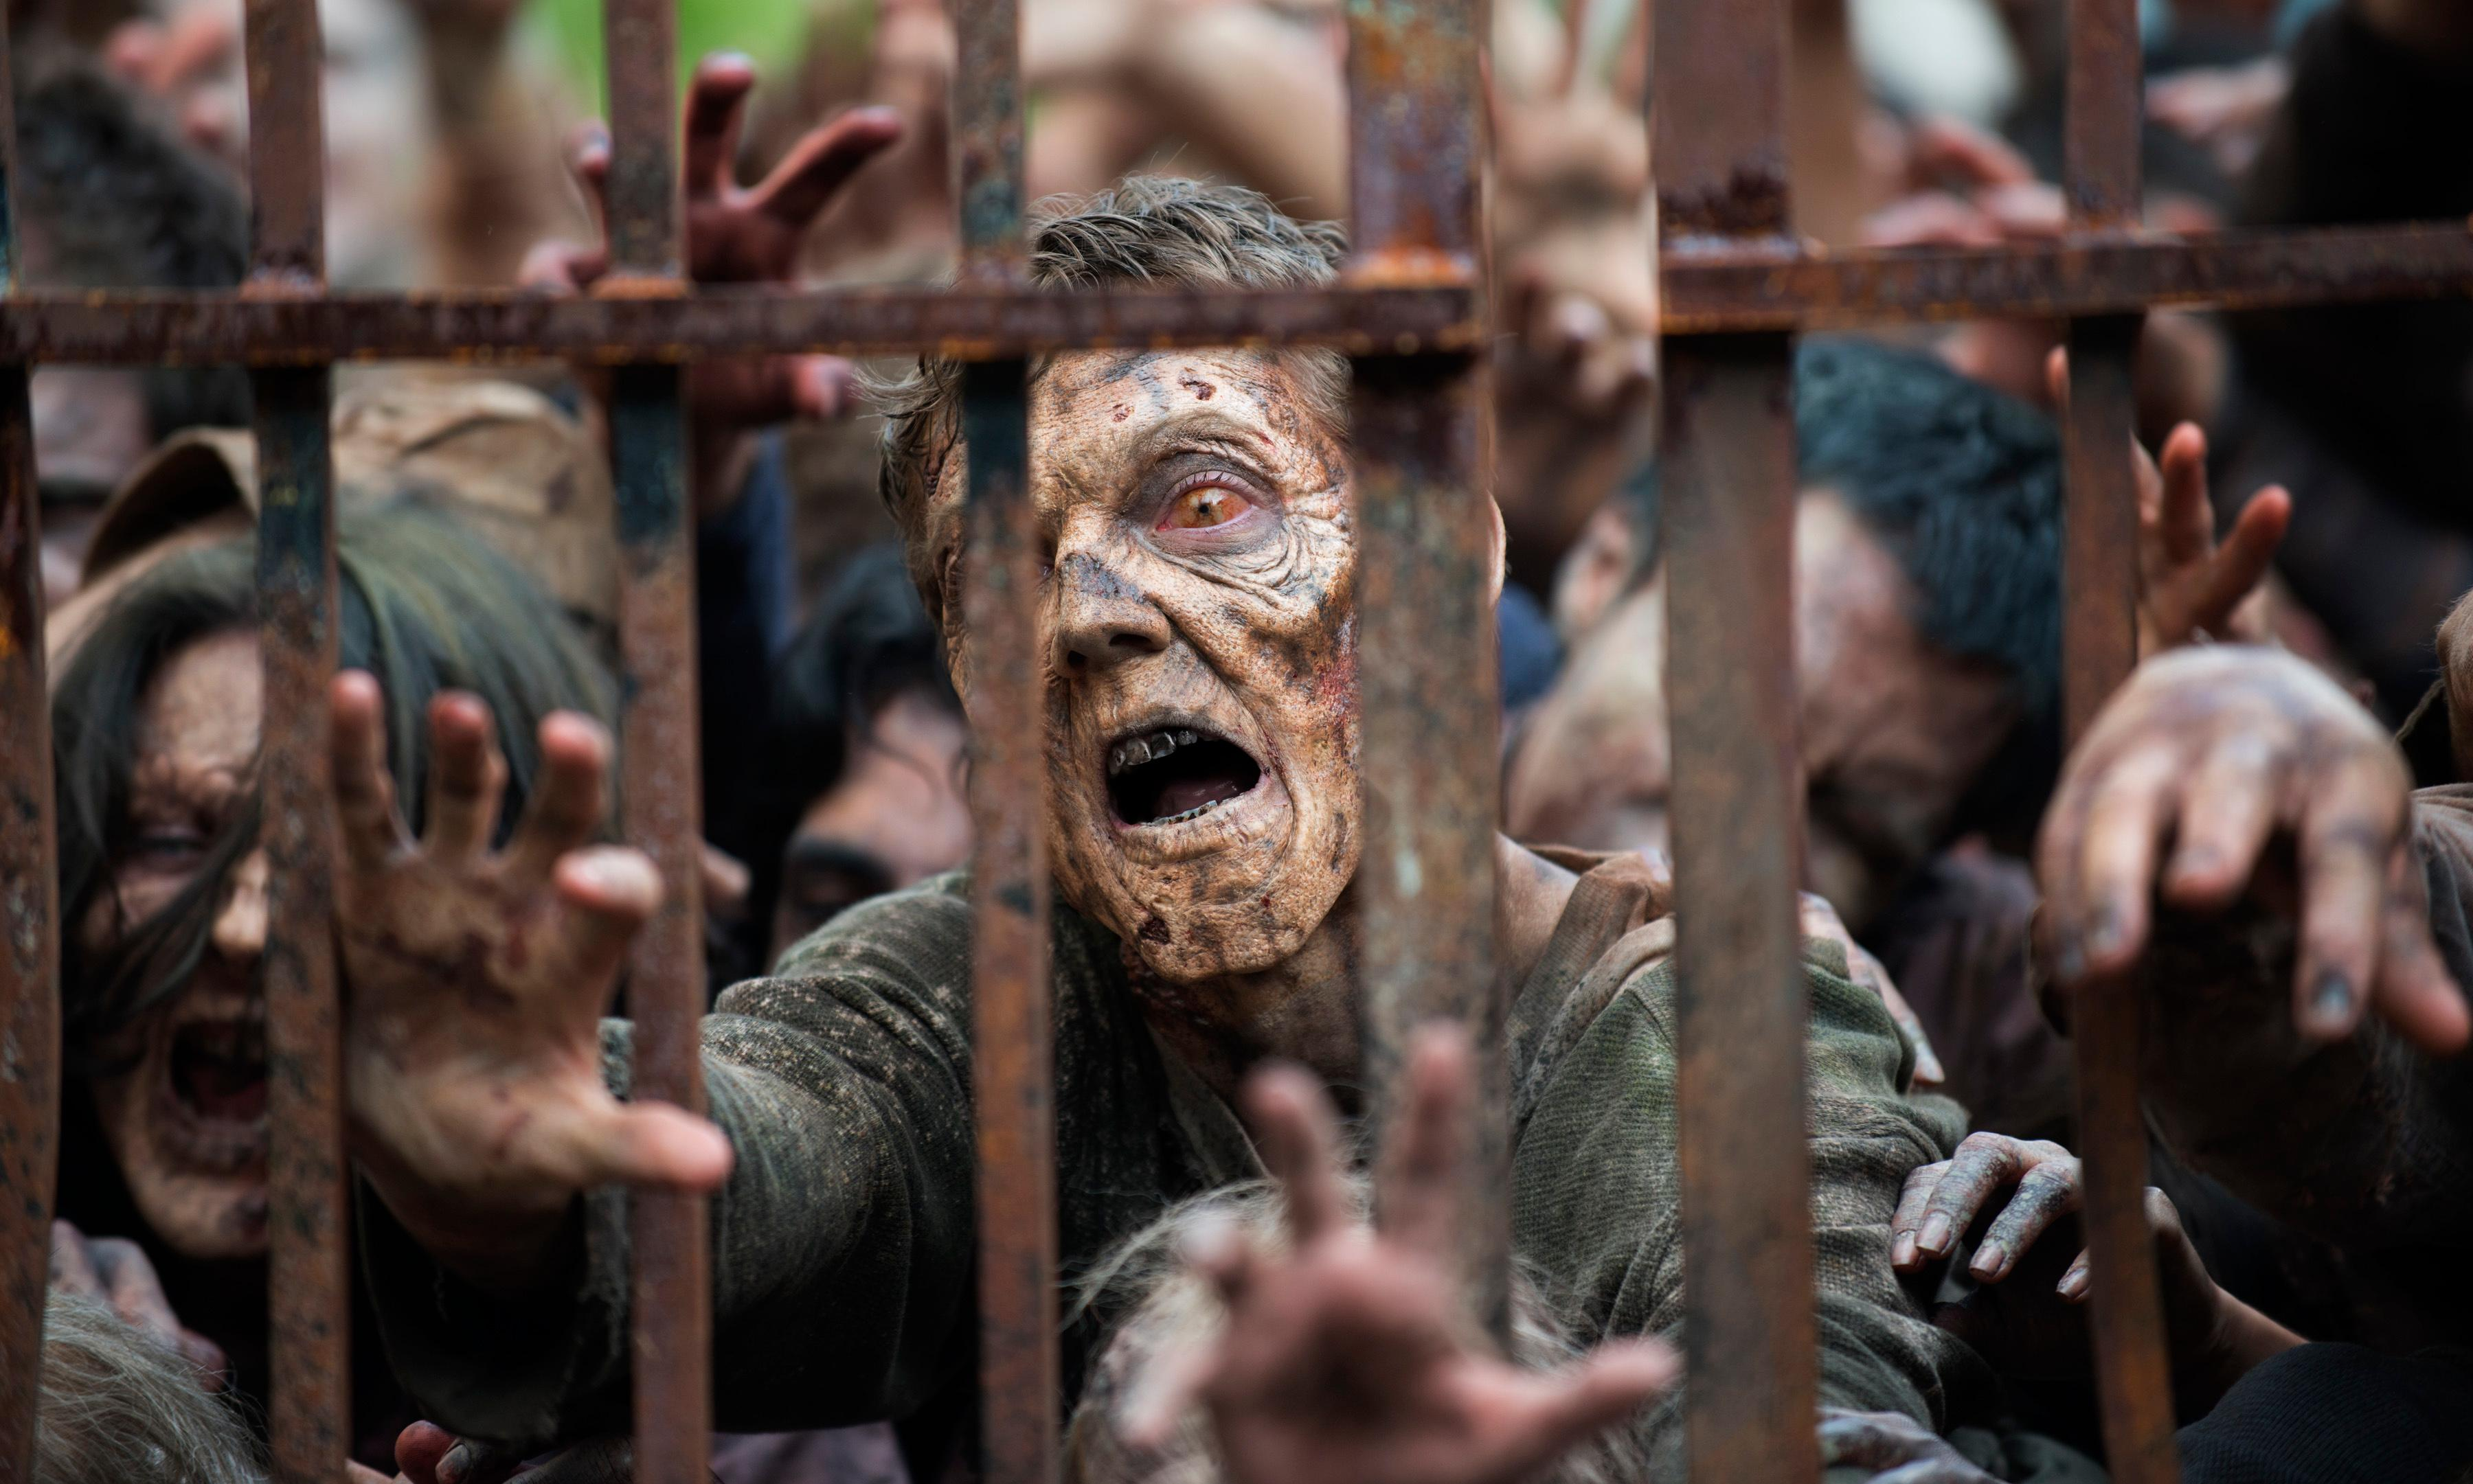 Zombie pensioners: ageism never dies